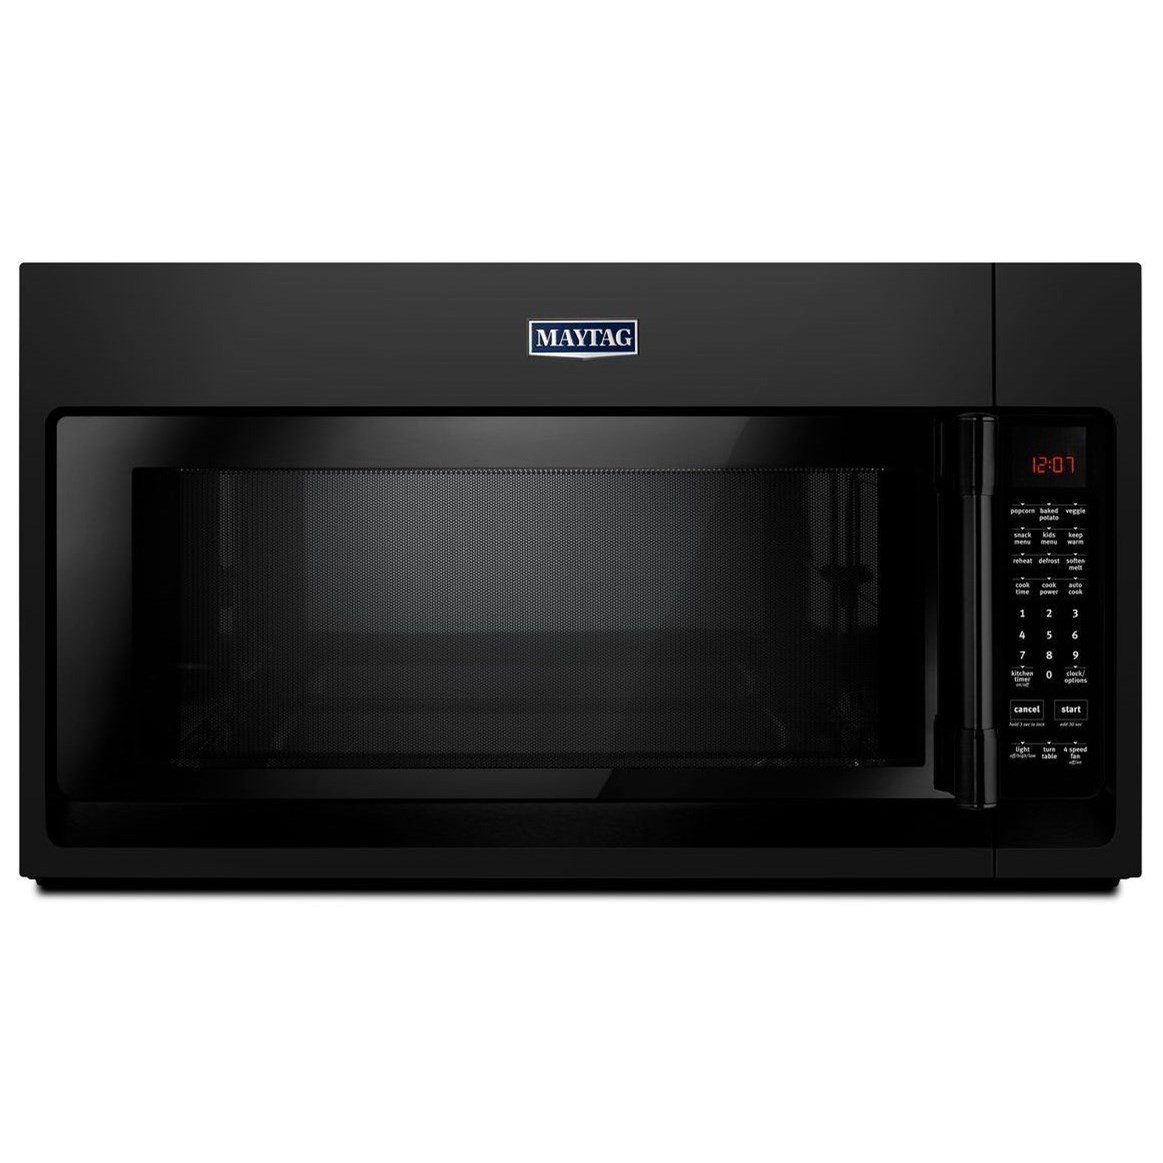 2.1 Cu.Ft. Capacity Over-The-Range Microwave